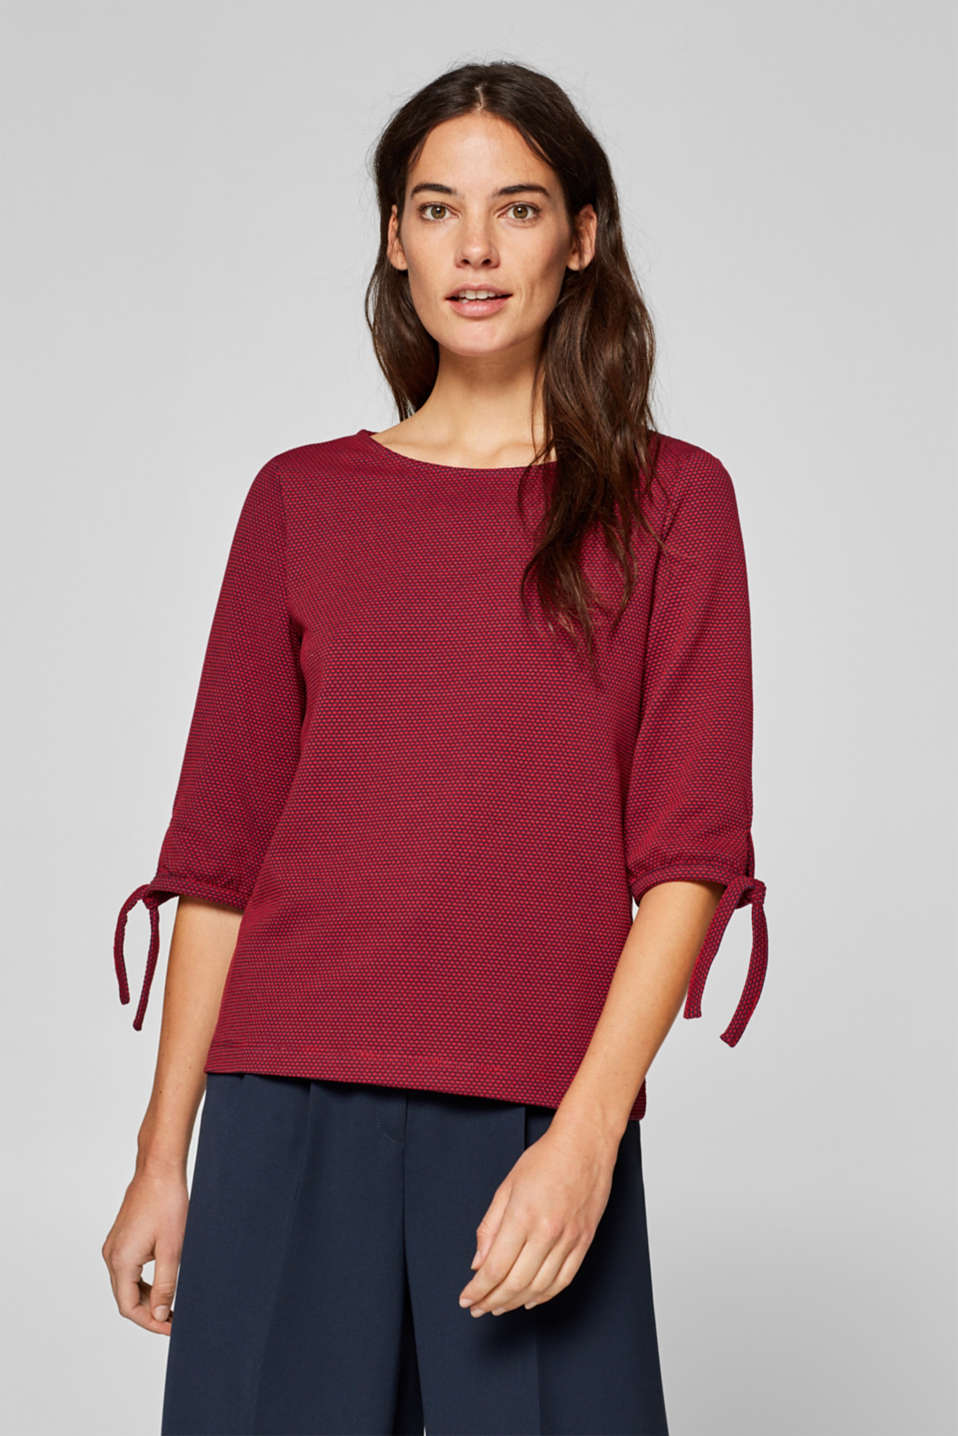 Esprit - Top with a two-tone texture and ties